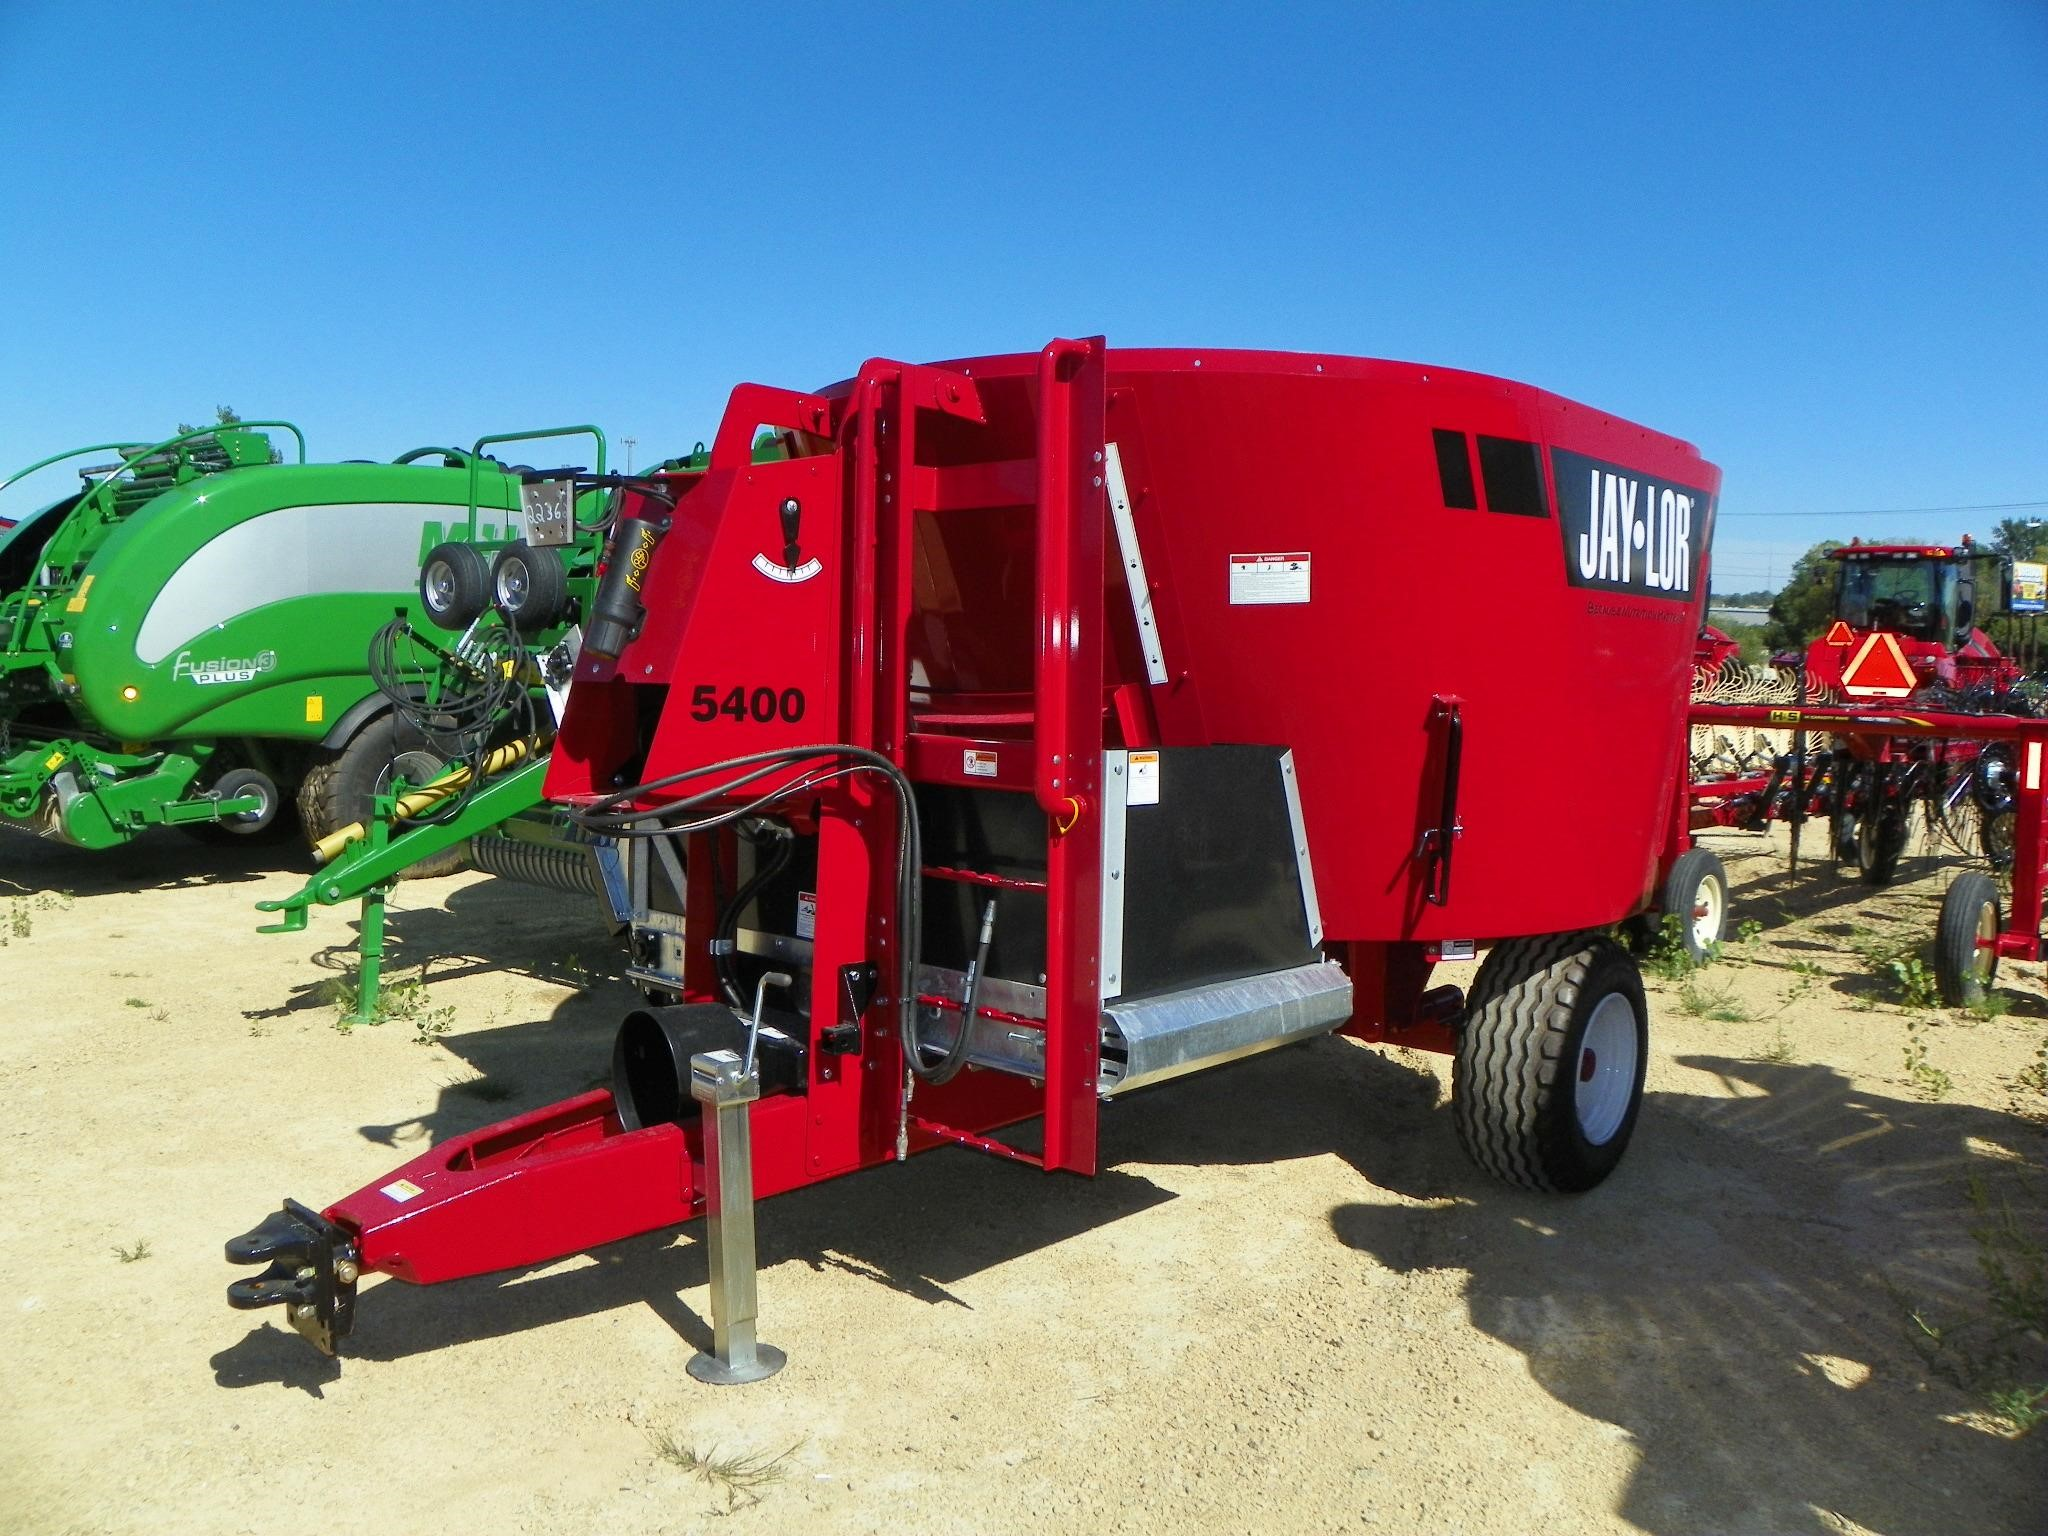 2021 Jay Lor 5400 Grinders and Mixer